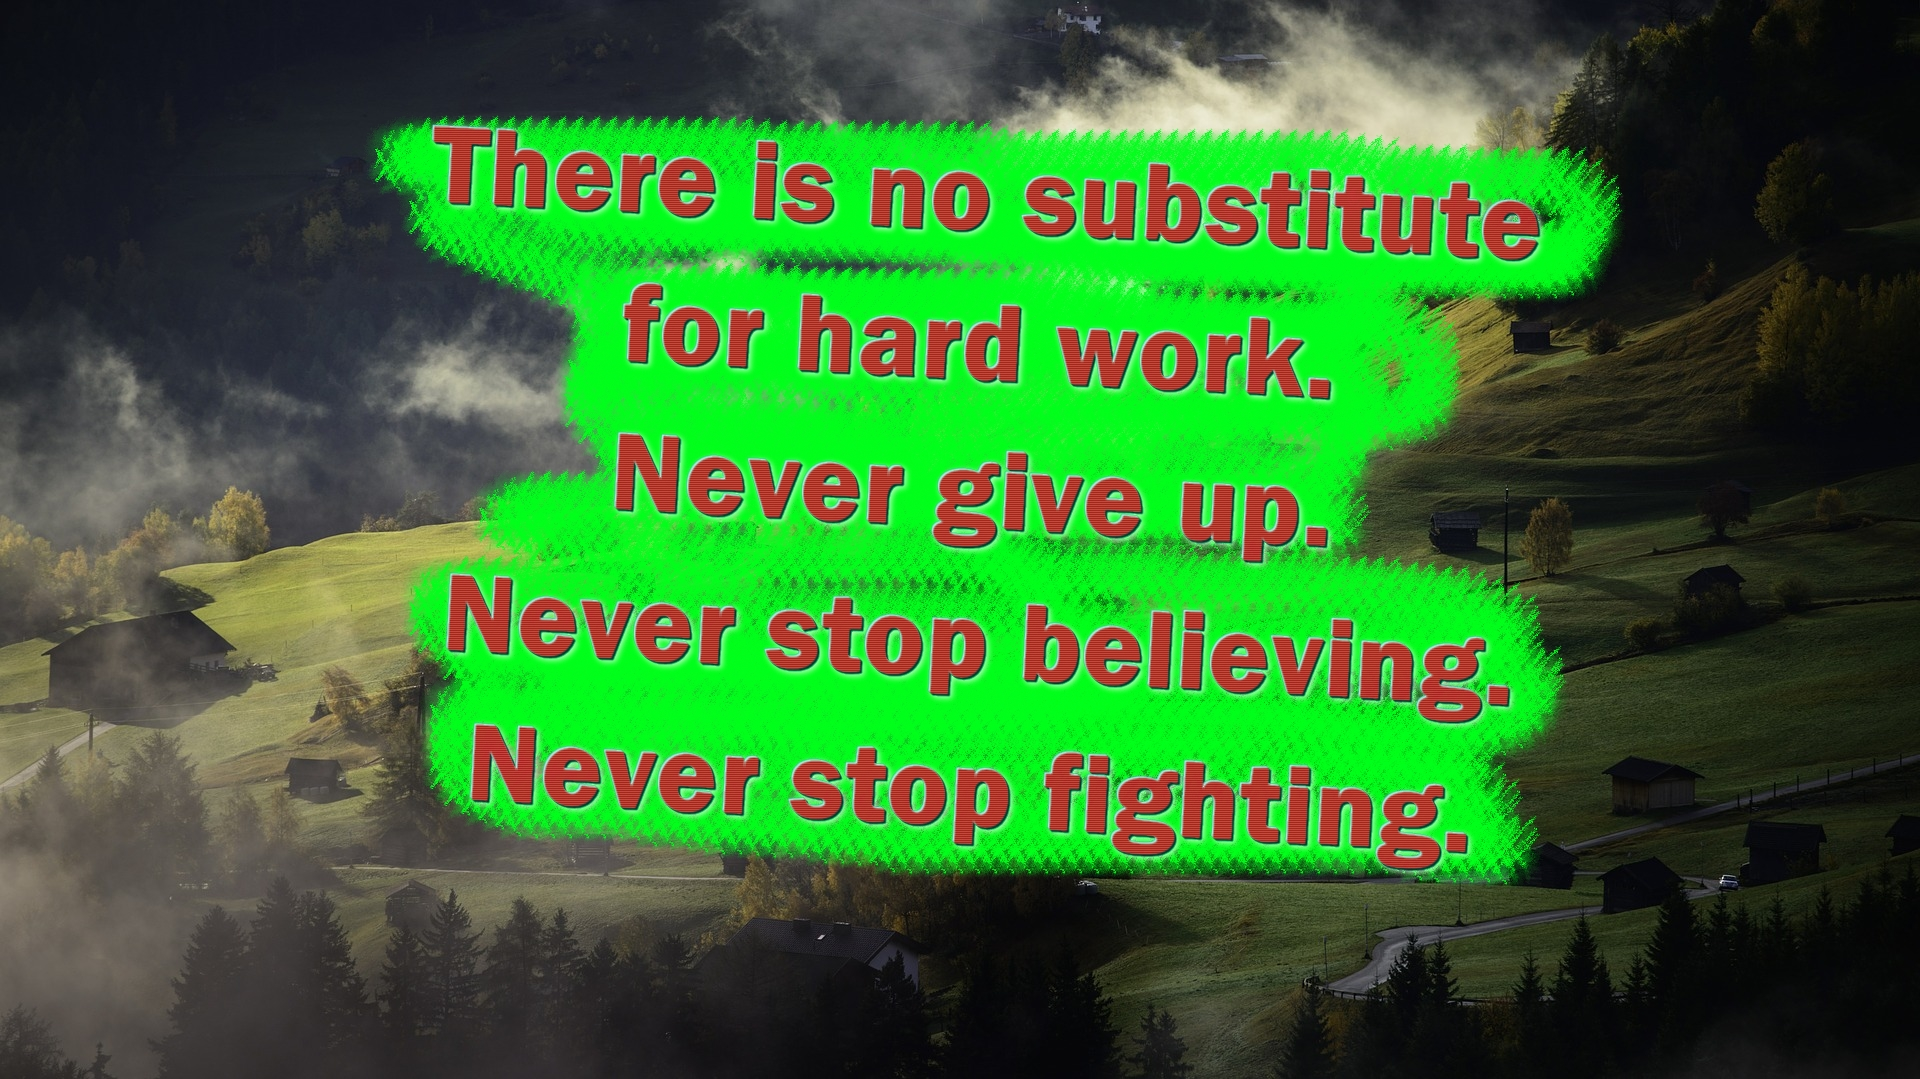 There is no substitute for hard work. Never give up. Never stop believing. Never stop fighting.